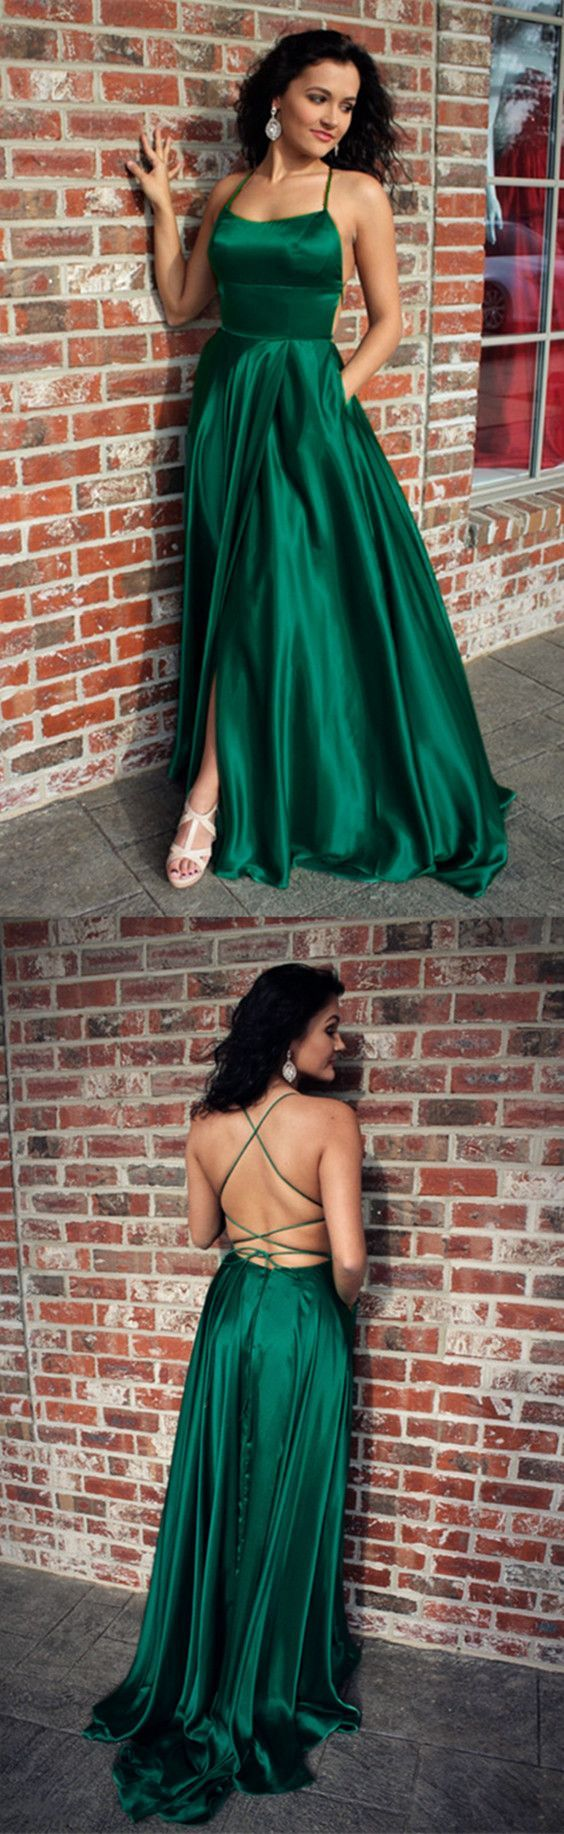 f1a075a3e2ae47 Long Green Satin Open Back Prom Dresses Leg Slit Evening Gowns ...